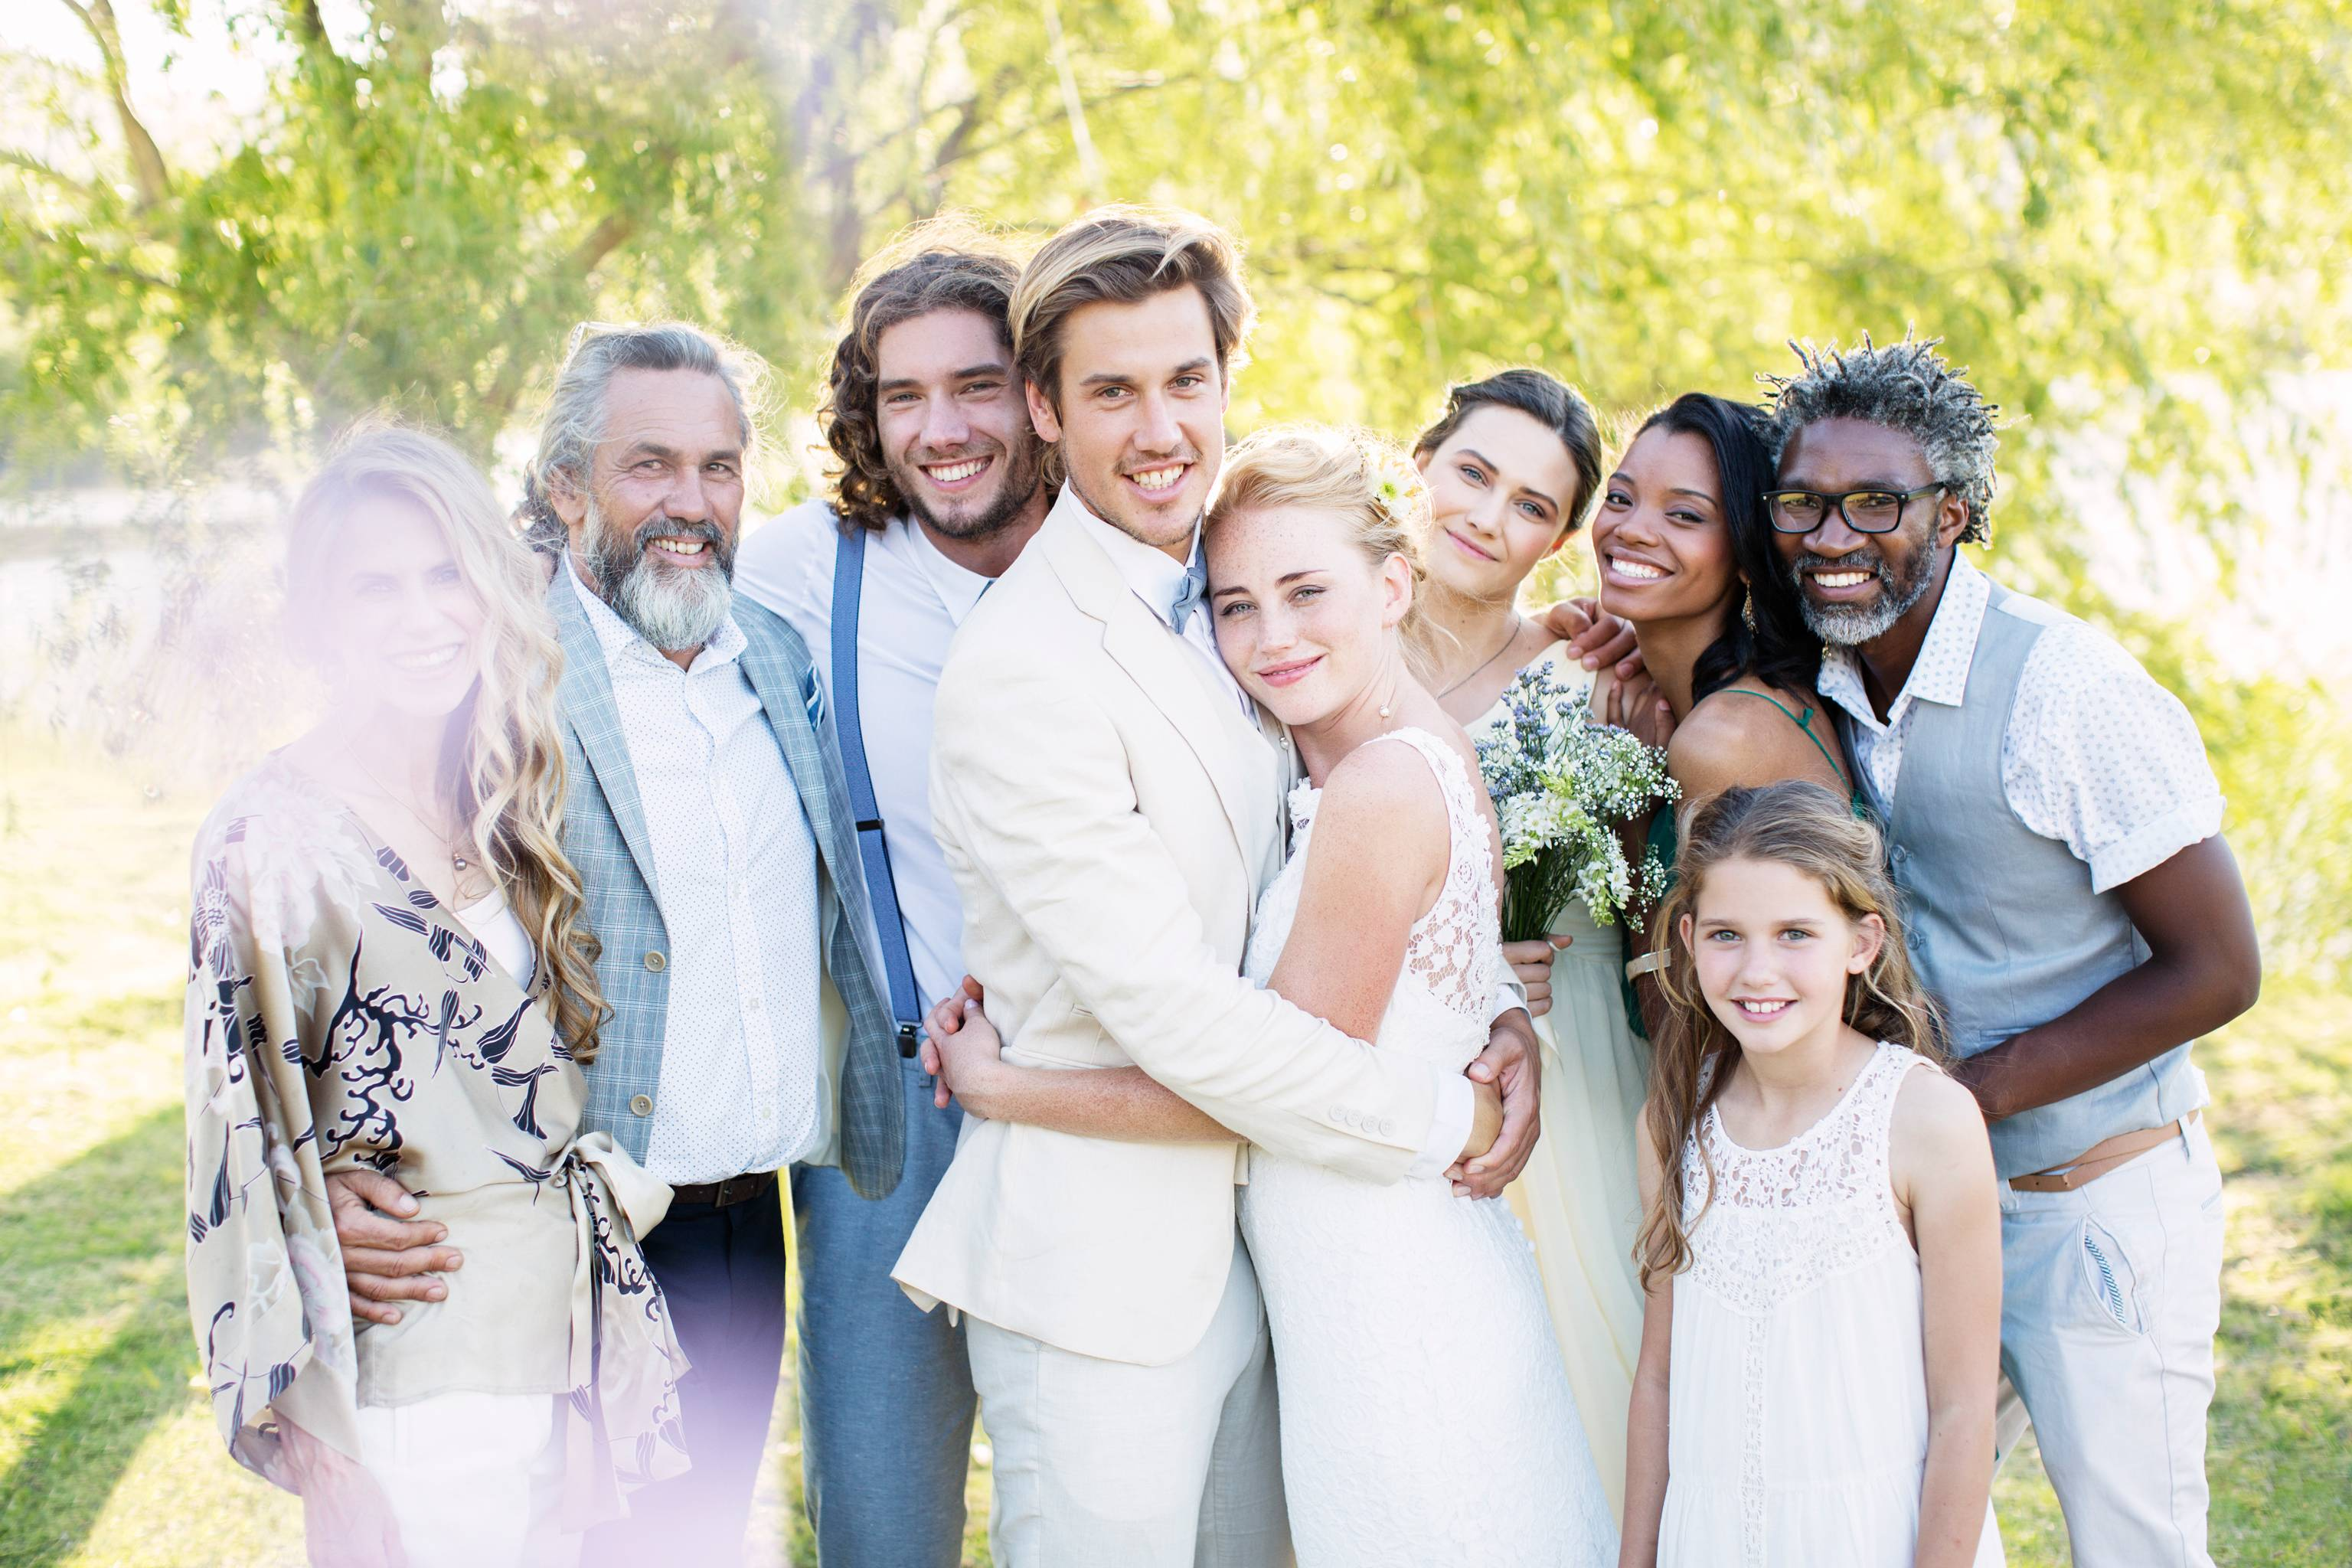 Good Reasons to Hire A Professional Wedding Photographer - Good Reasons to Hire A Professional Wedding Photographer